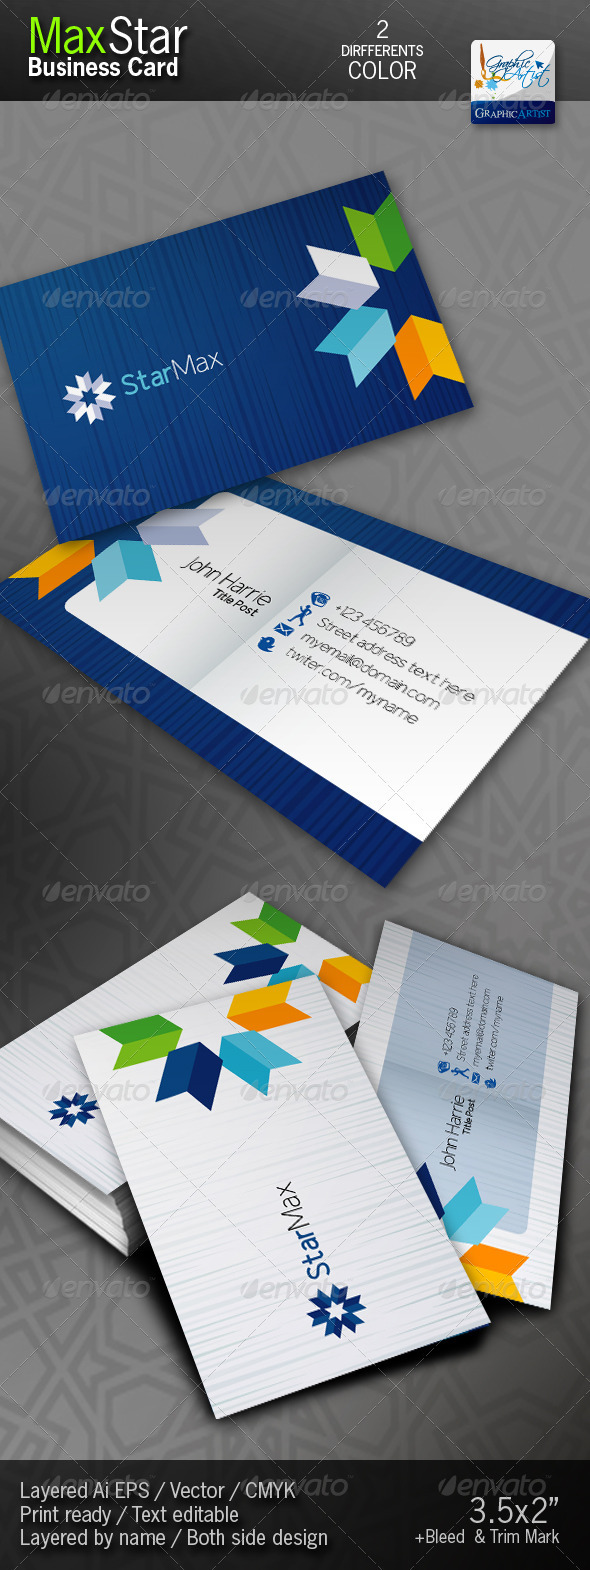 StarMax Business Cards - Corporate Business Cards